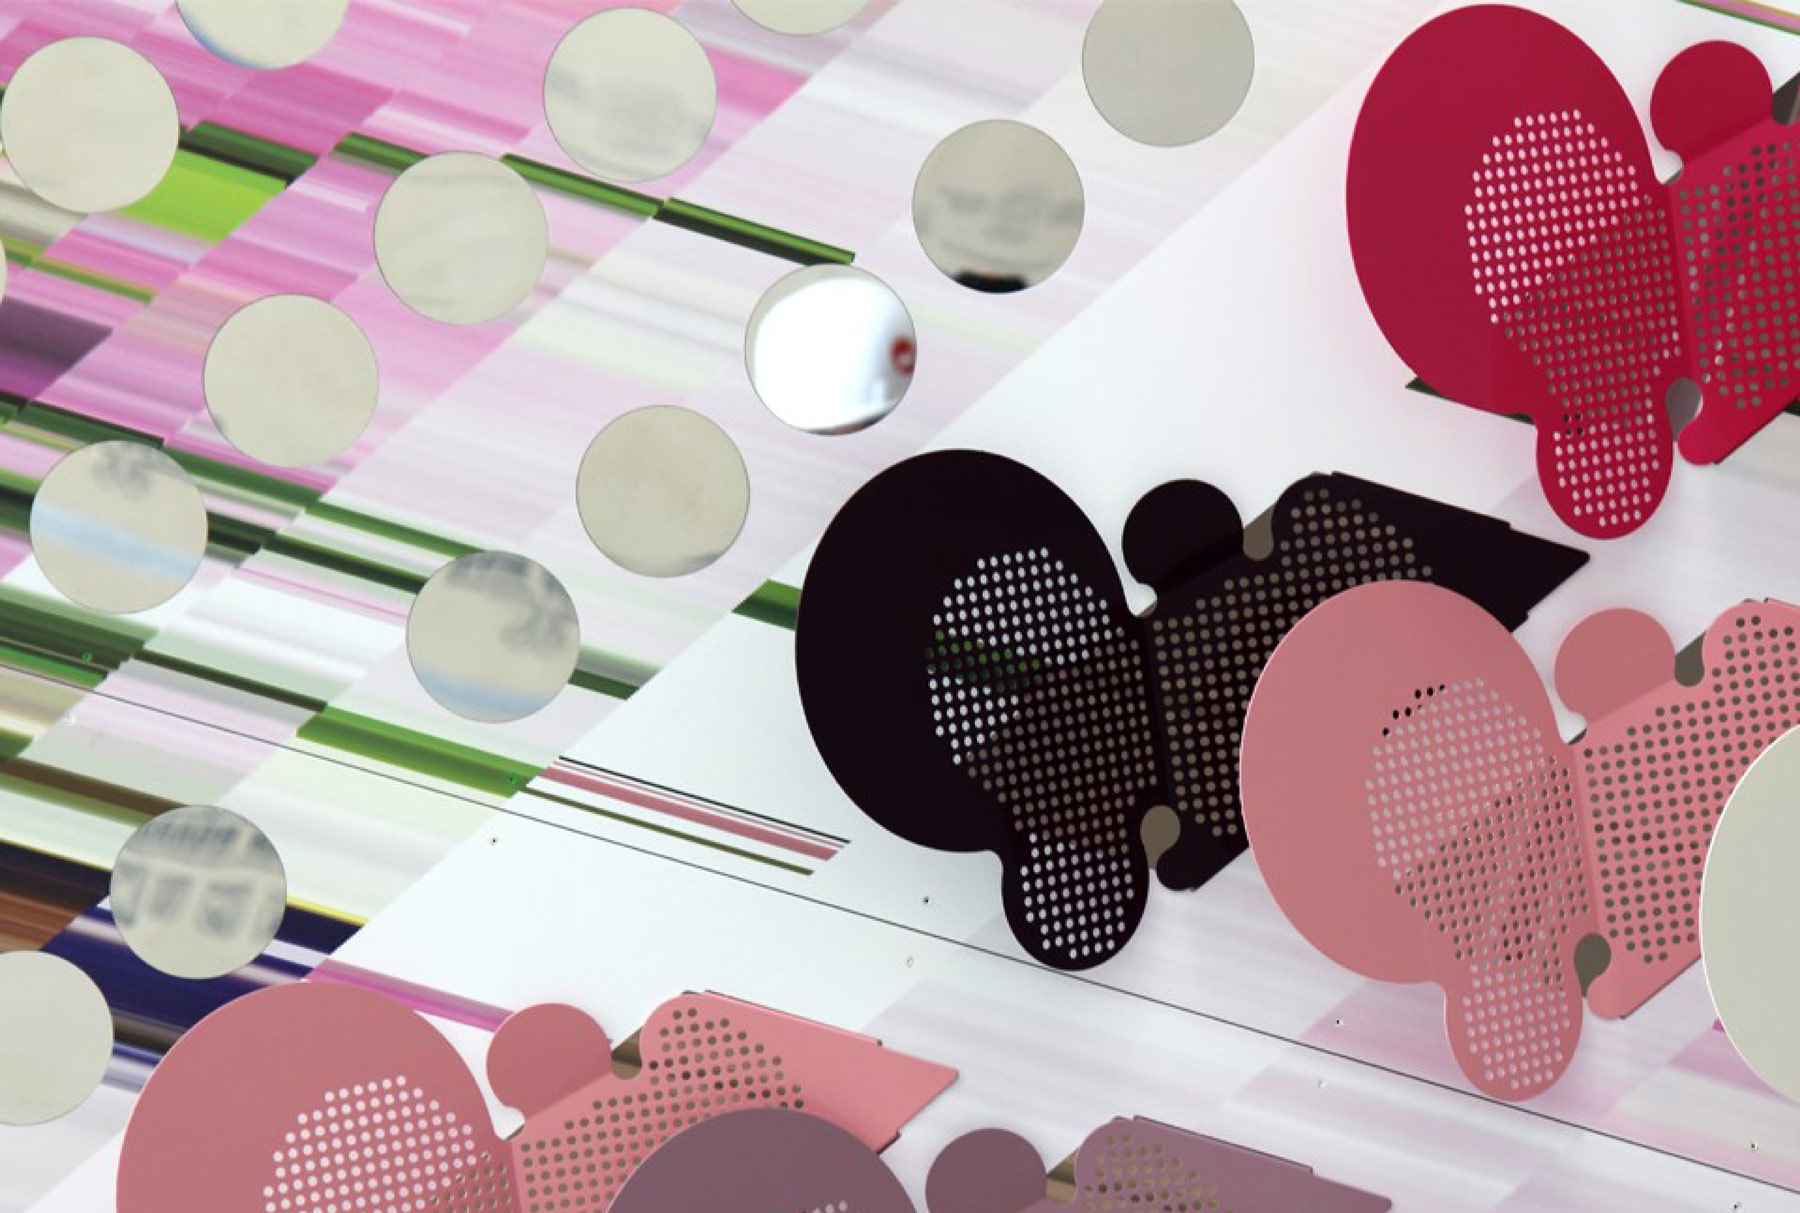 Detail of Inverted Landscapes by Elena Manferdini with Arktura Solutions Studio made of perforated metal panels.